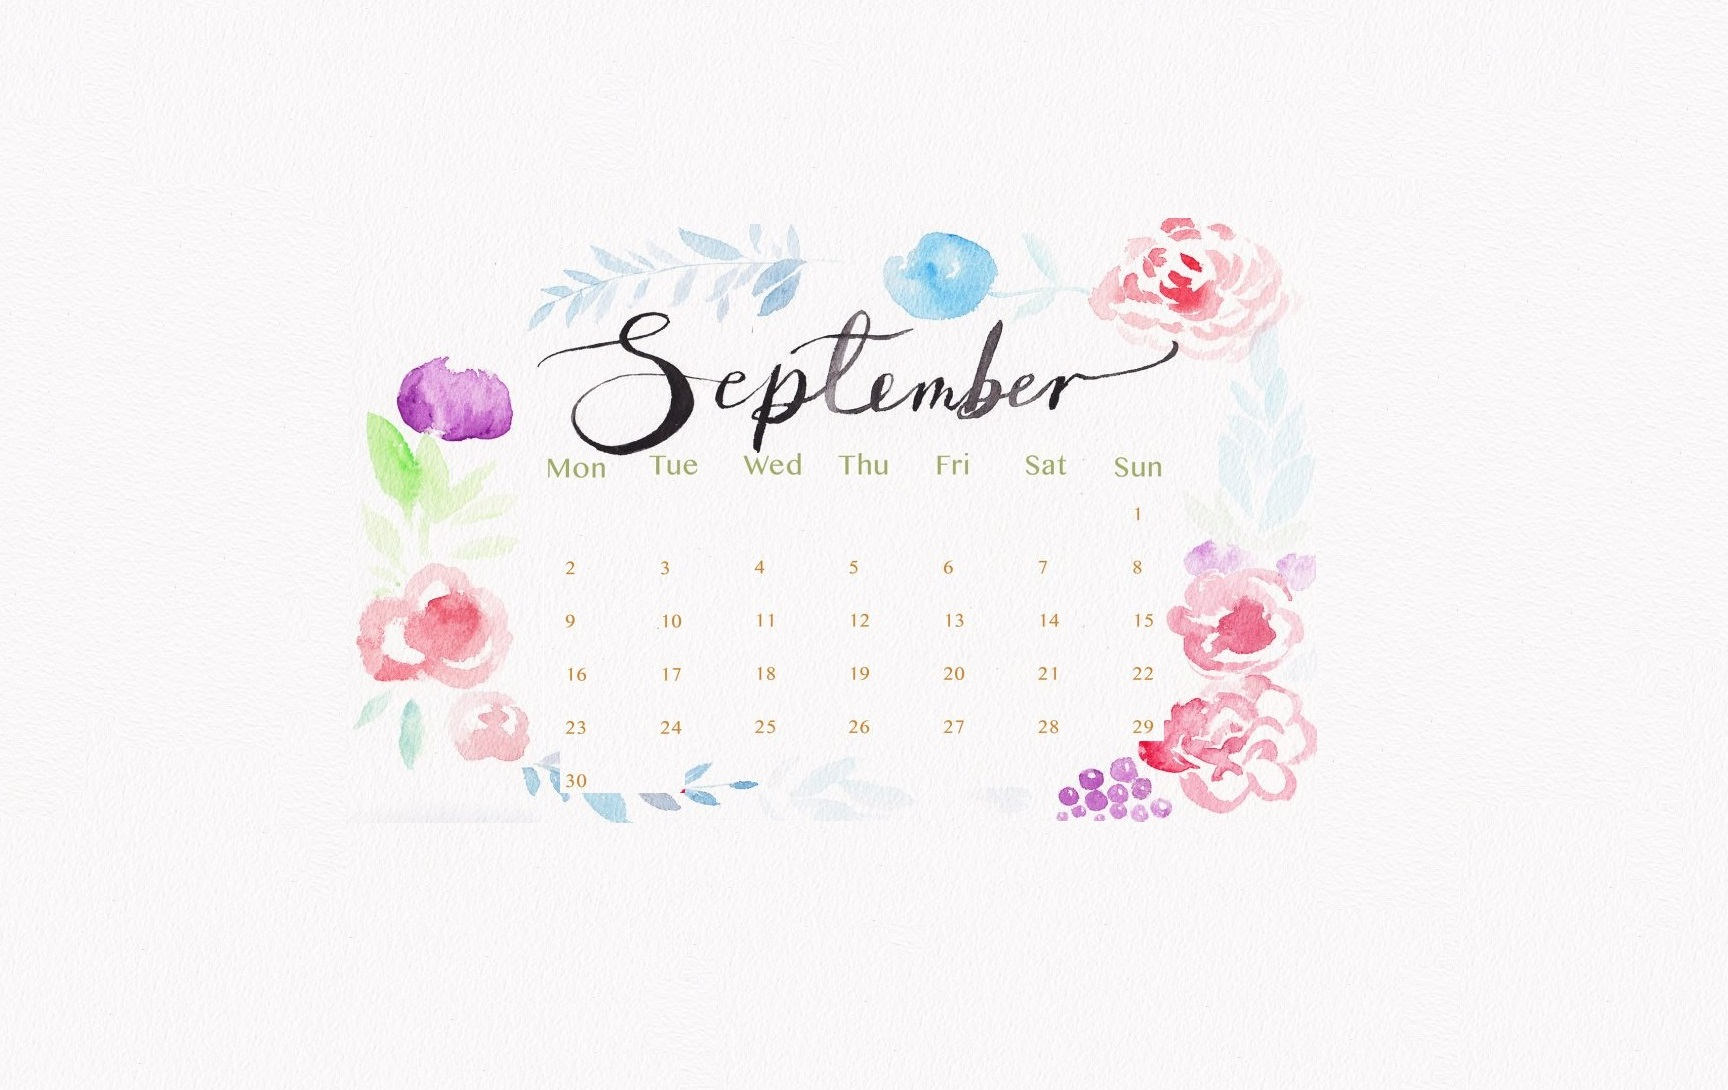 September 2019 Watercolor Calendar Wallpaper